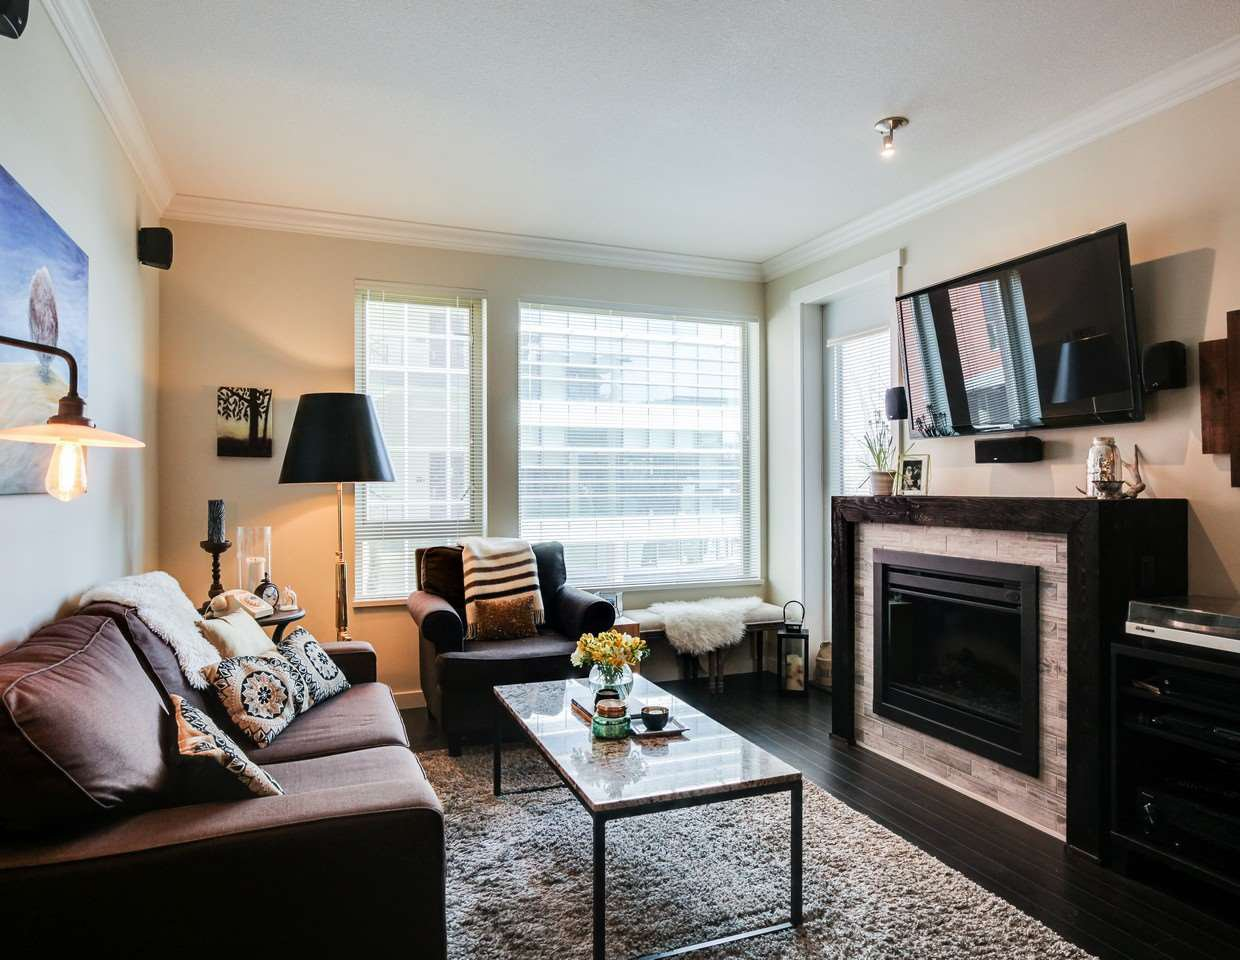 Photo 7: Photos: 319 119 W 22ND STREET in North Vancouver: Central Lonsdale Condo for sale : MLS®# R2047201